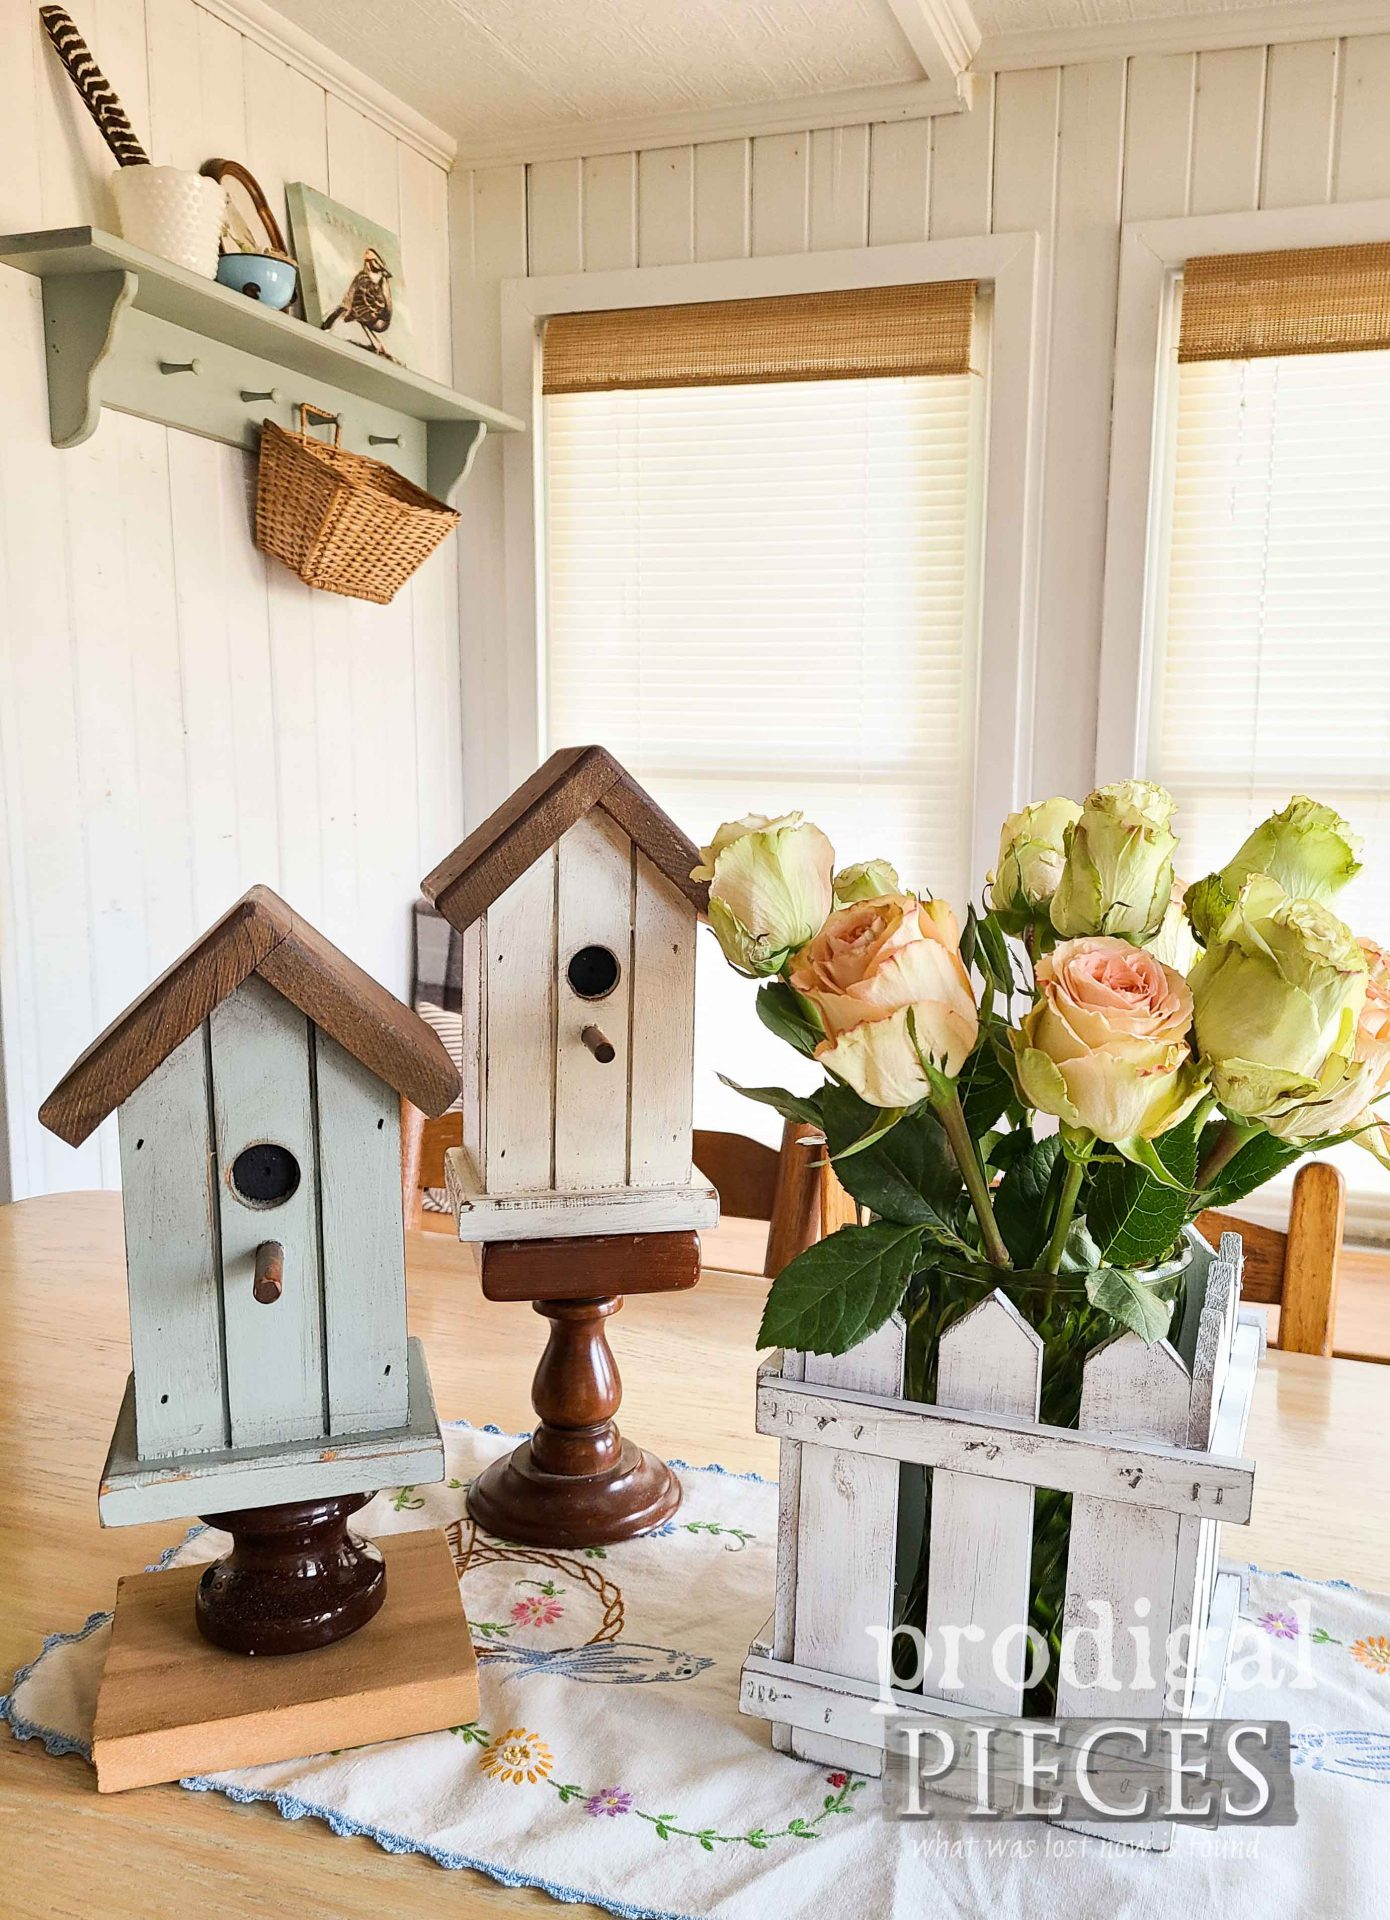 Upcycled Vintage Shelf into Cottage Decor by Larissa of Prodigal Pieces | prodigalpieces.com #prodigalpieces #cottage #home #homedecor